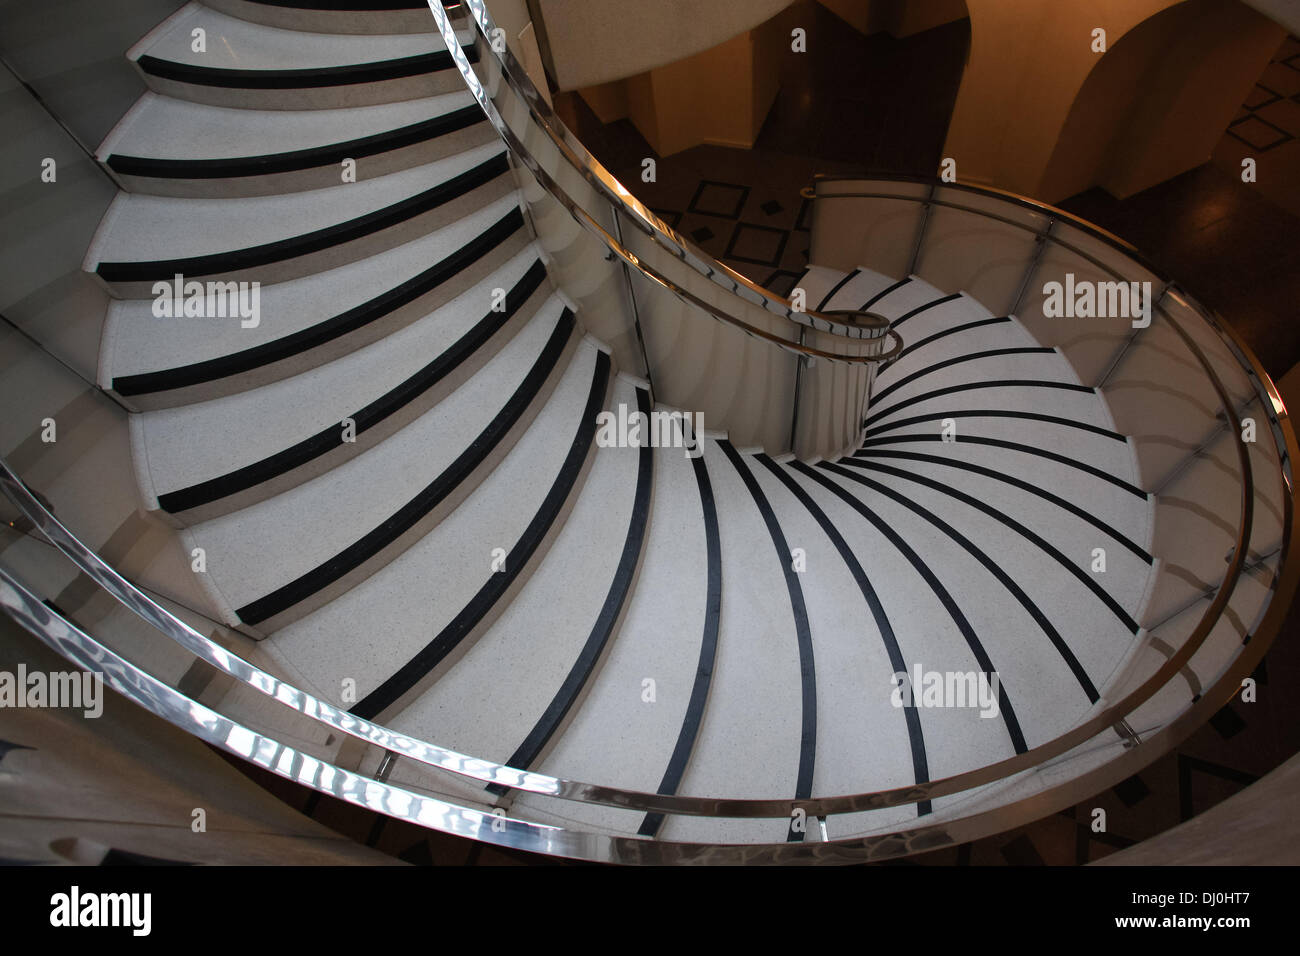 London, UK. 18th November 2013. The striking new spiral staircase sweeping down from the main entrance area to the Stock Photo